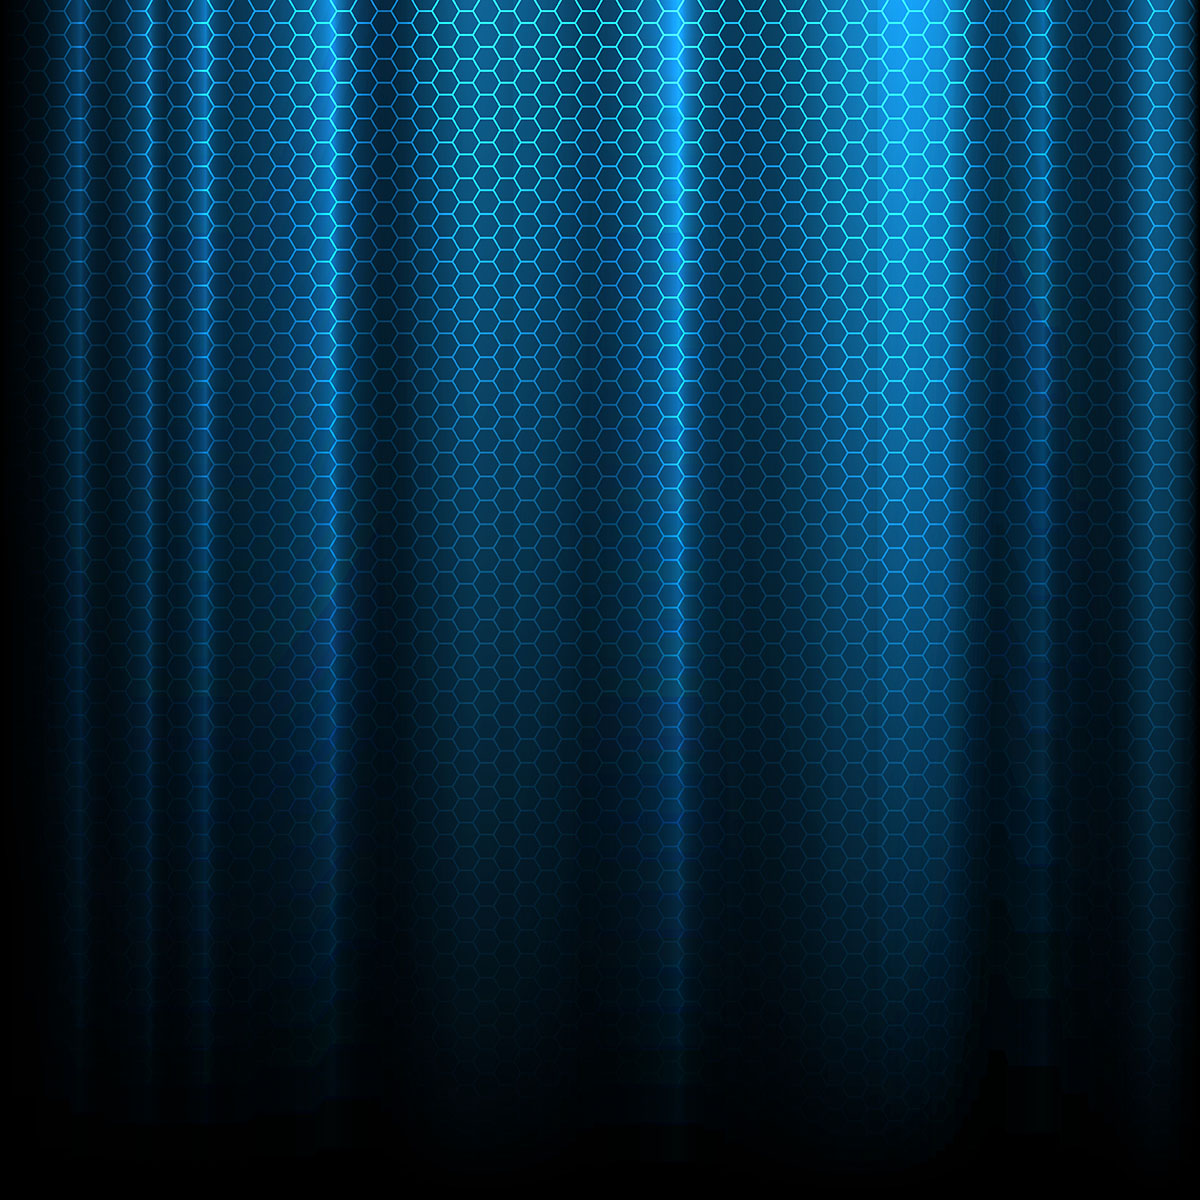 Abstract Techno Background Download Free Vectors